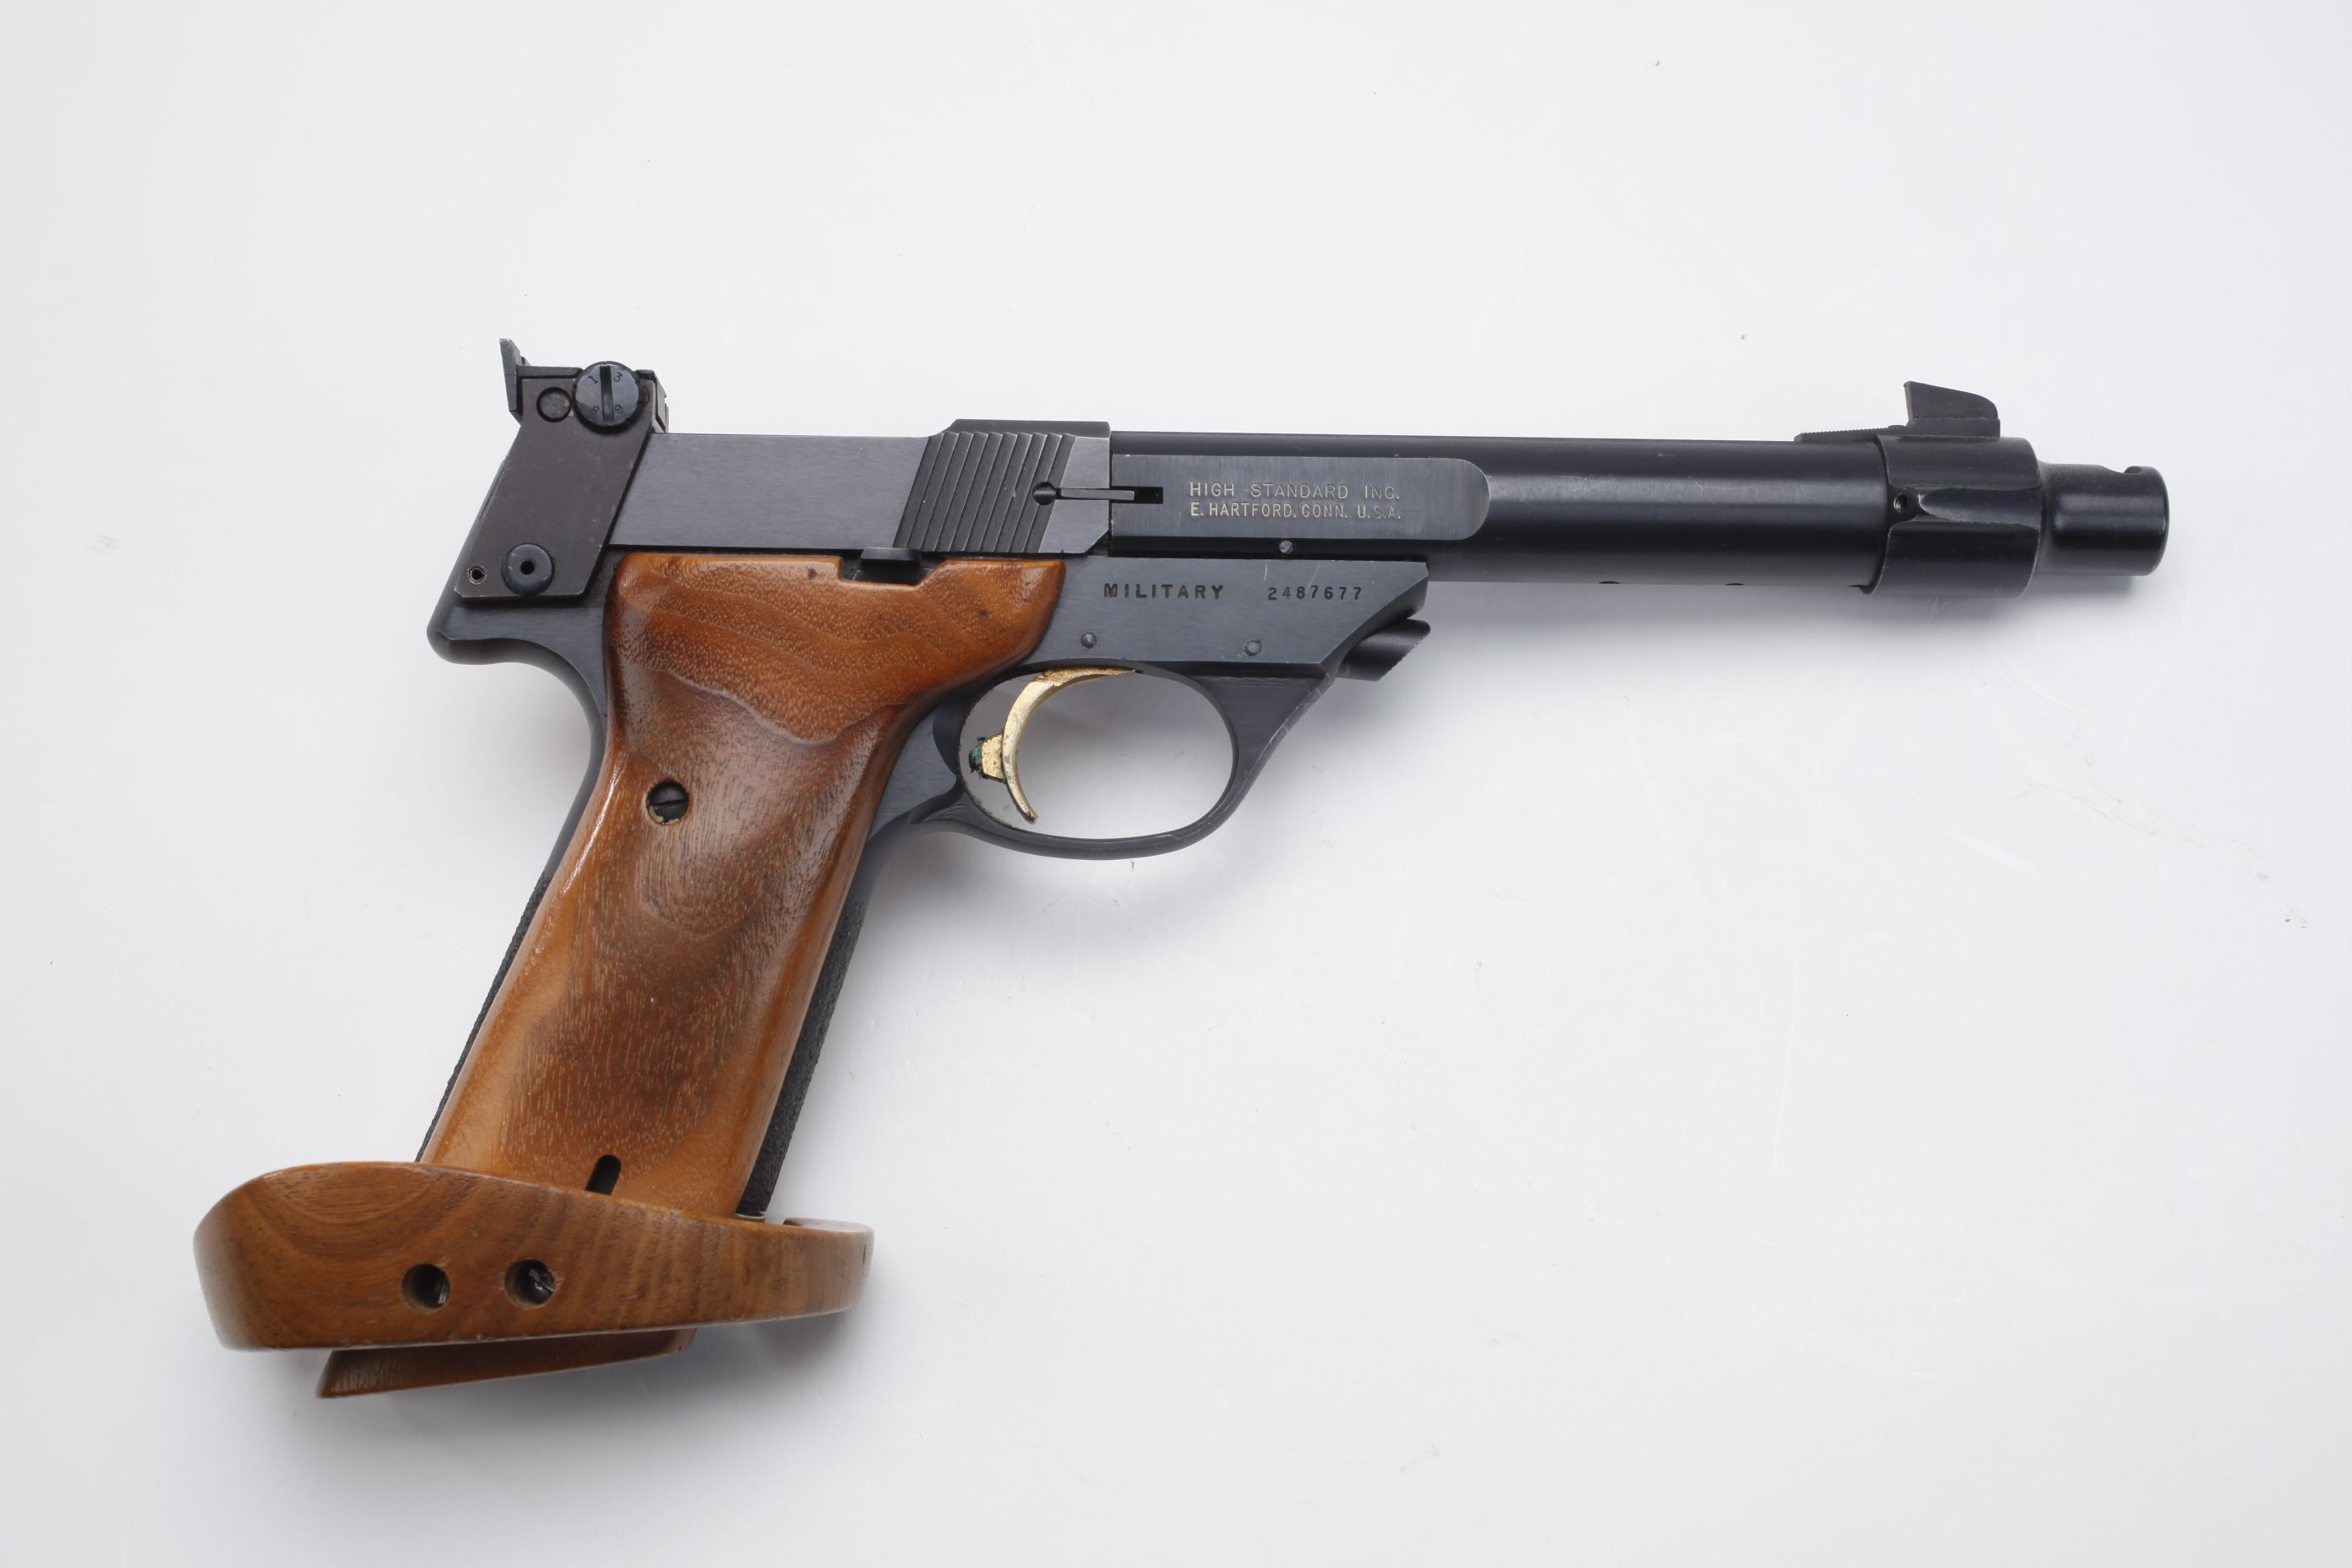 High Standard Trophy Semi Automatic Pistol